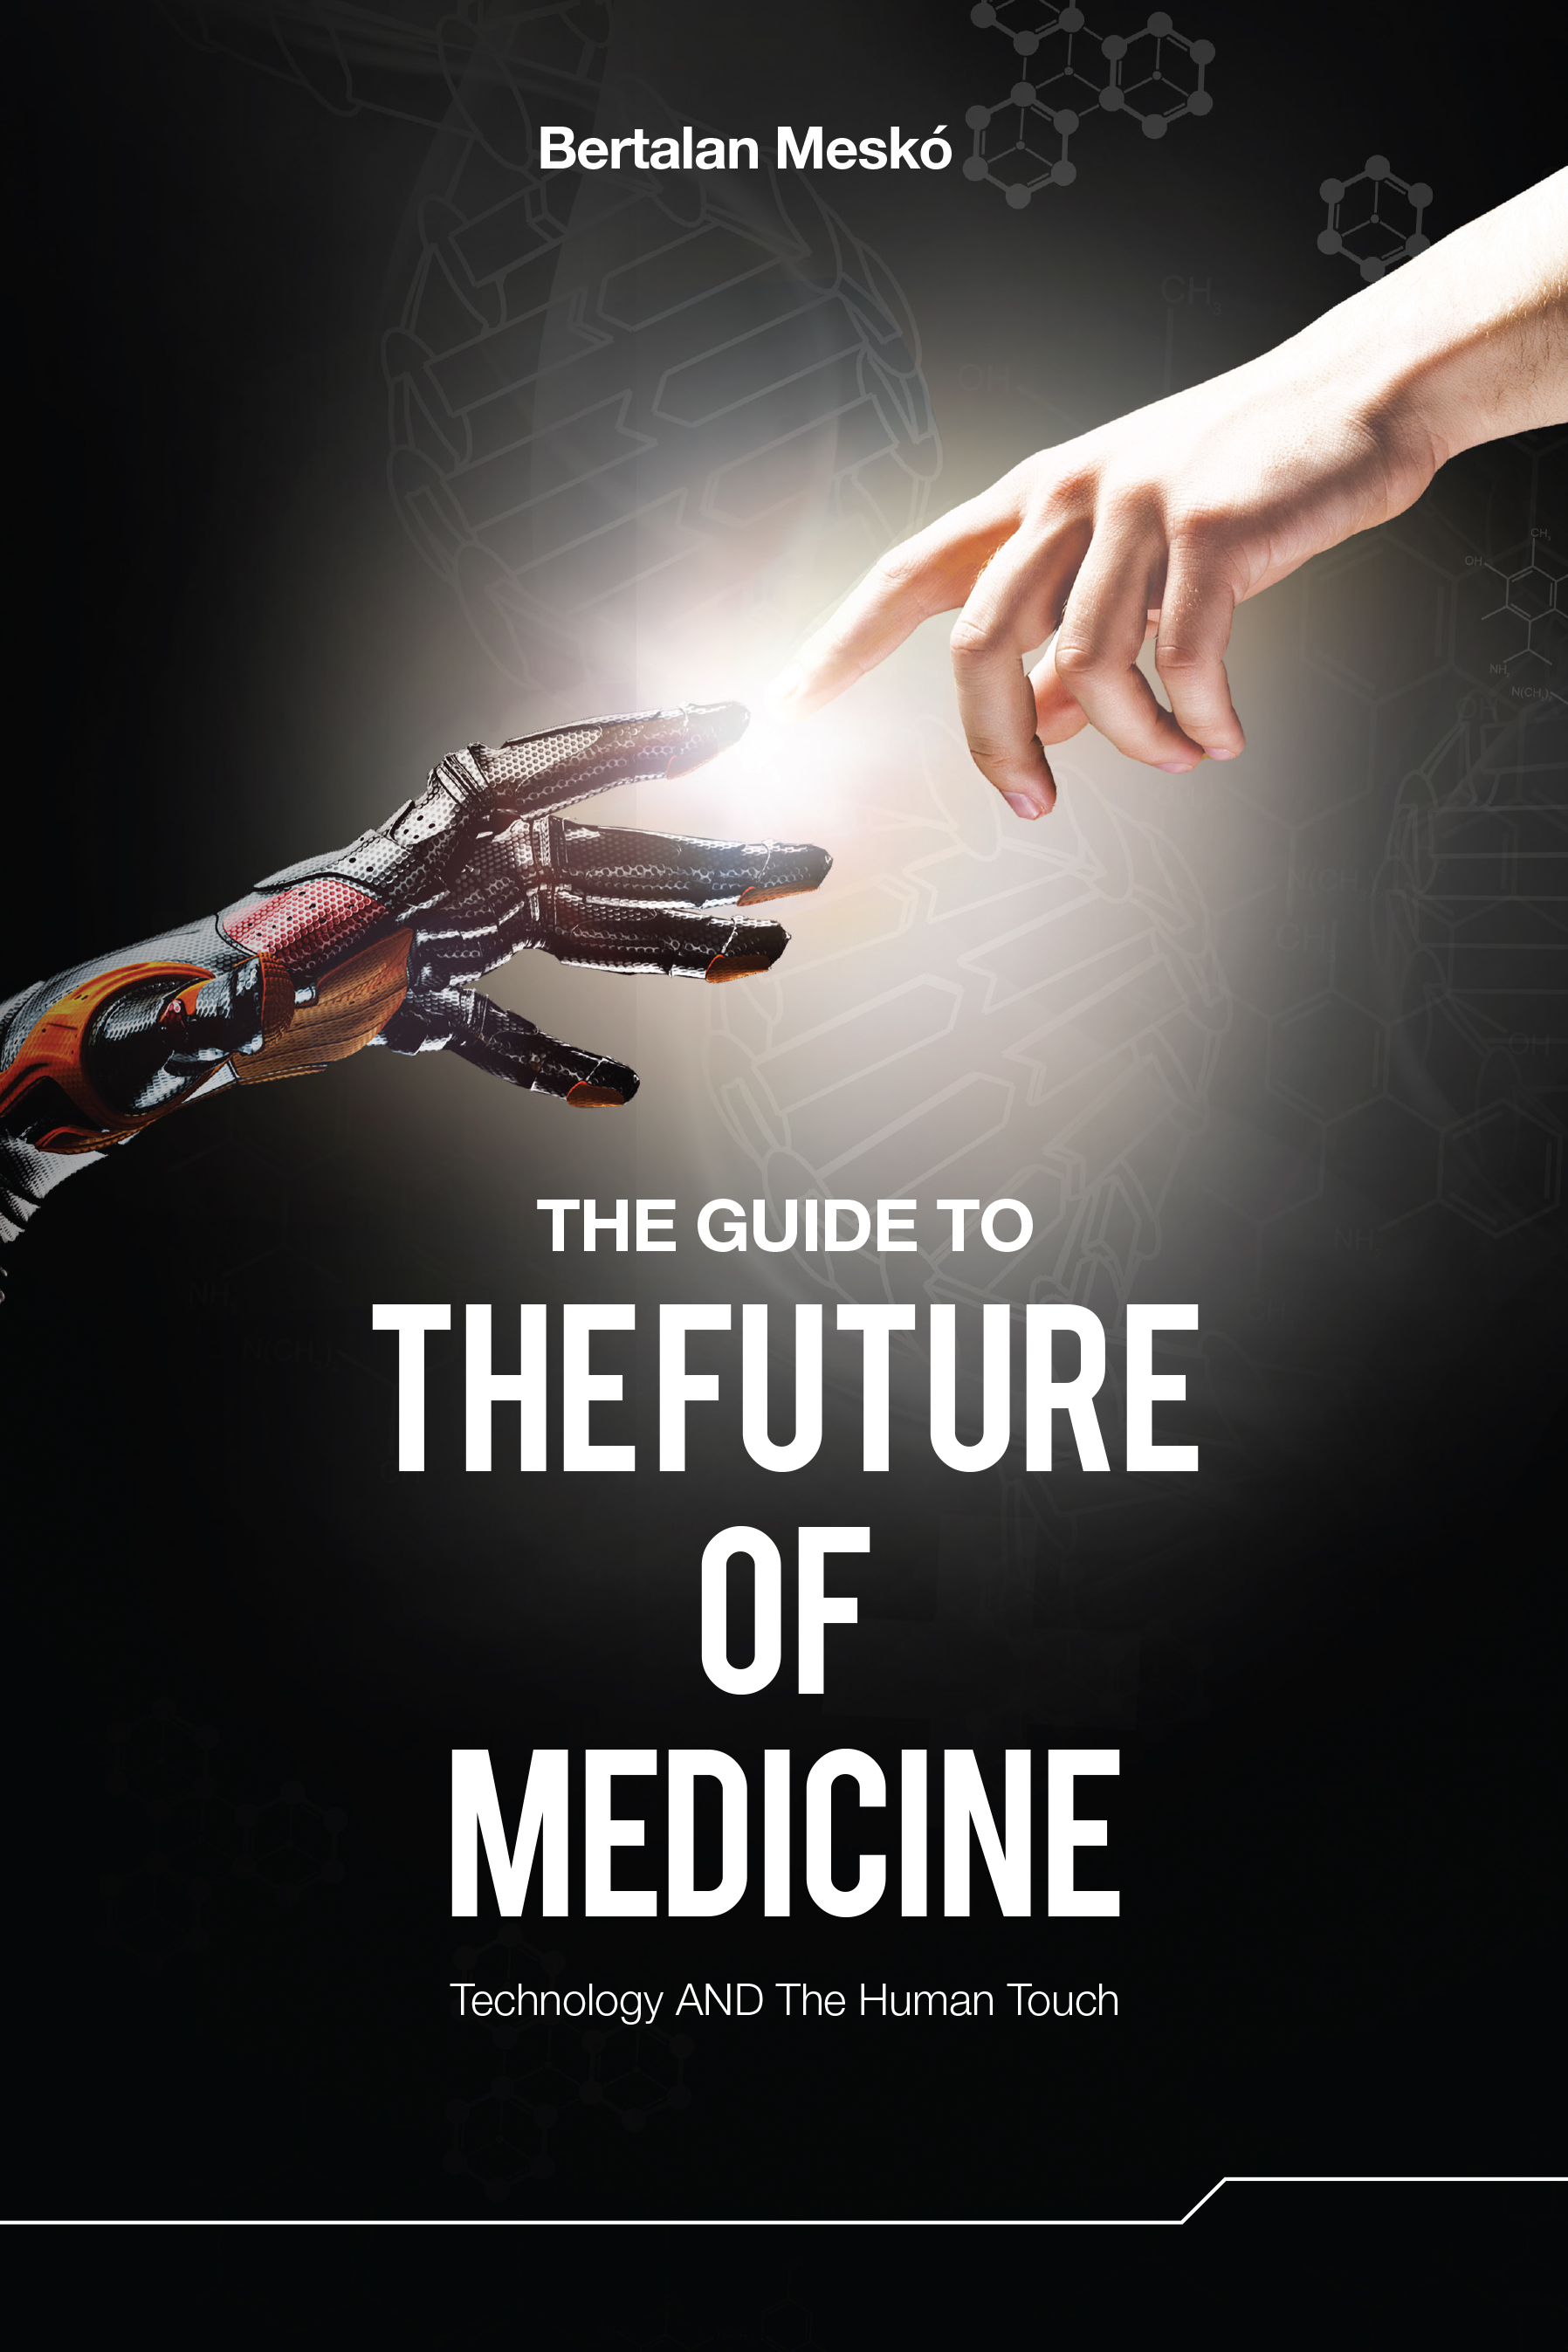 the_guide_to_the_future_of_medicine_ebook_cover_1408644510.jpg_1796x2694